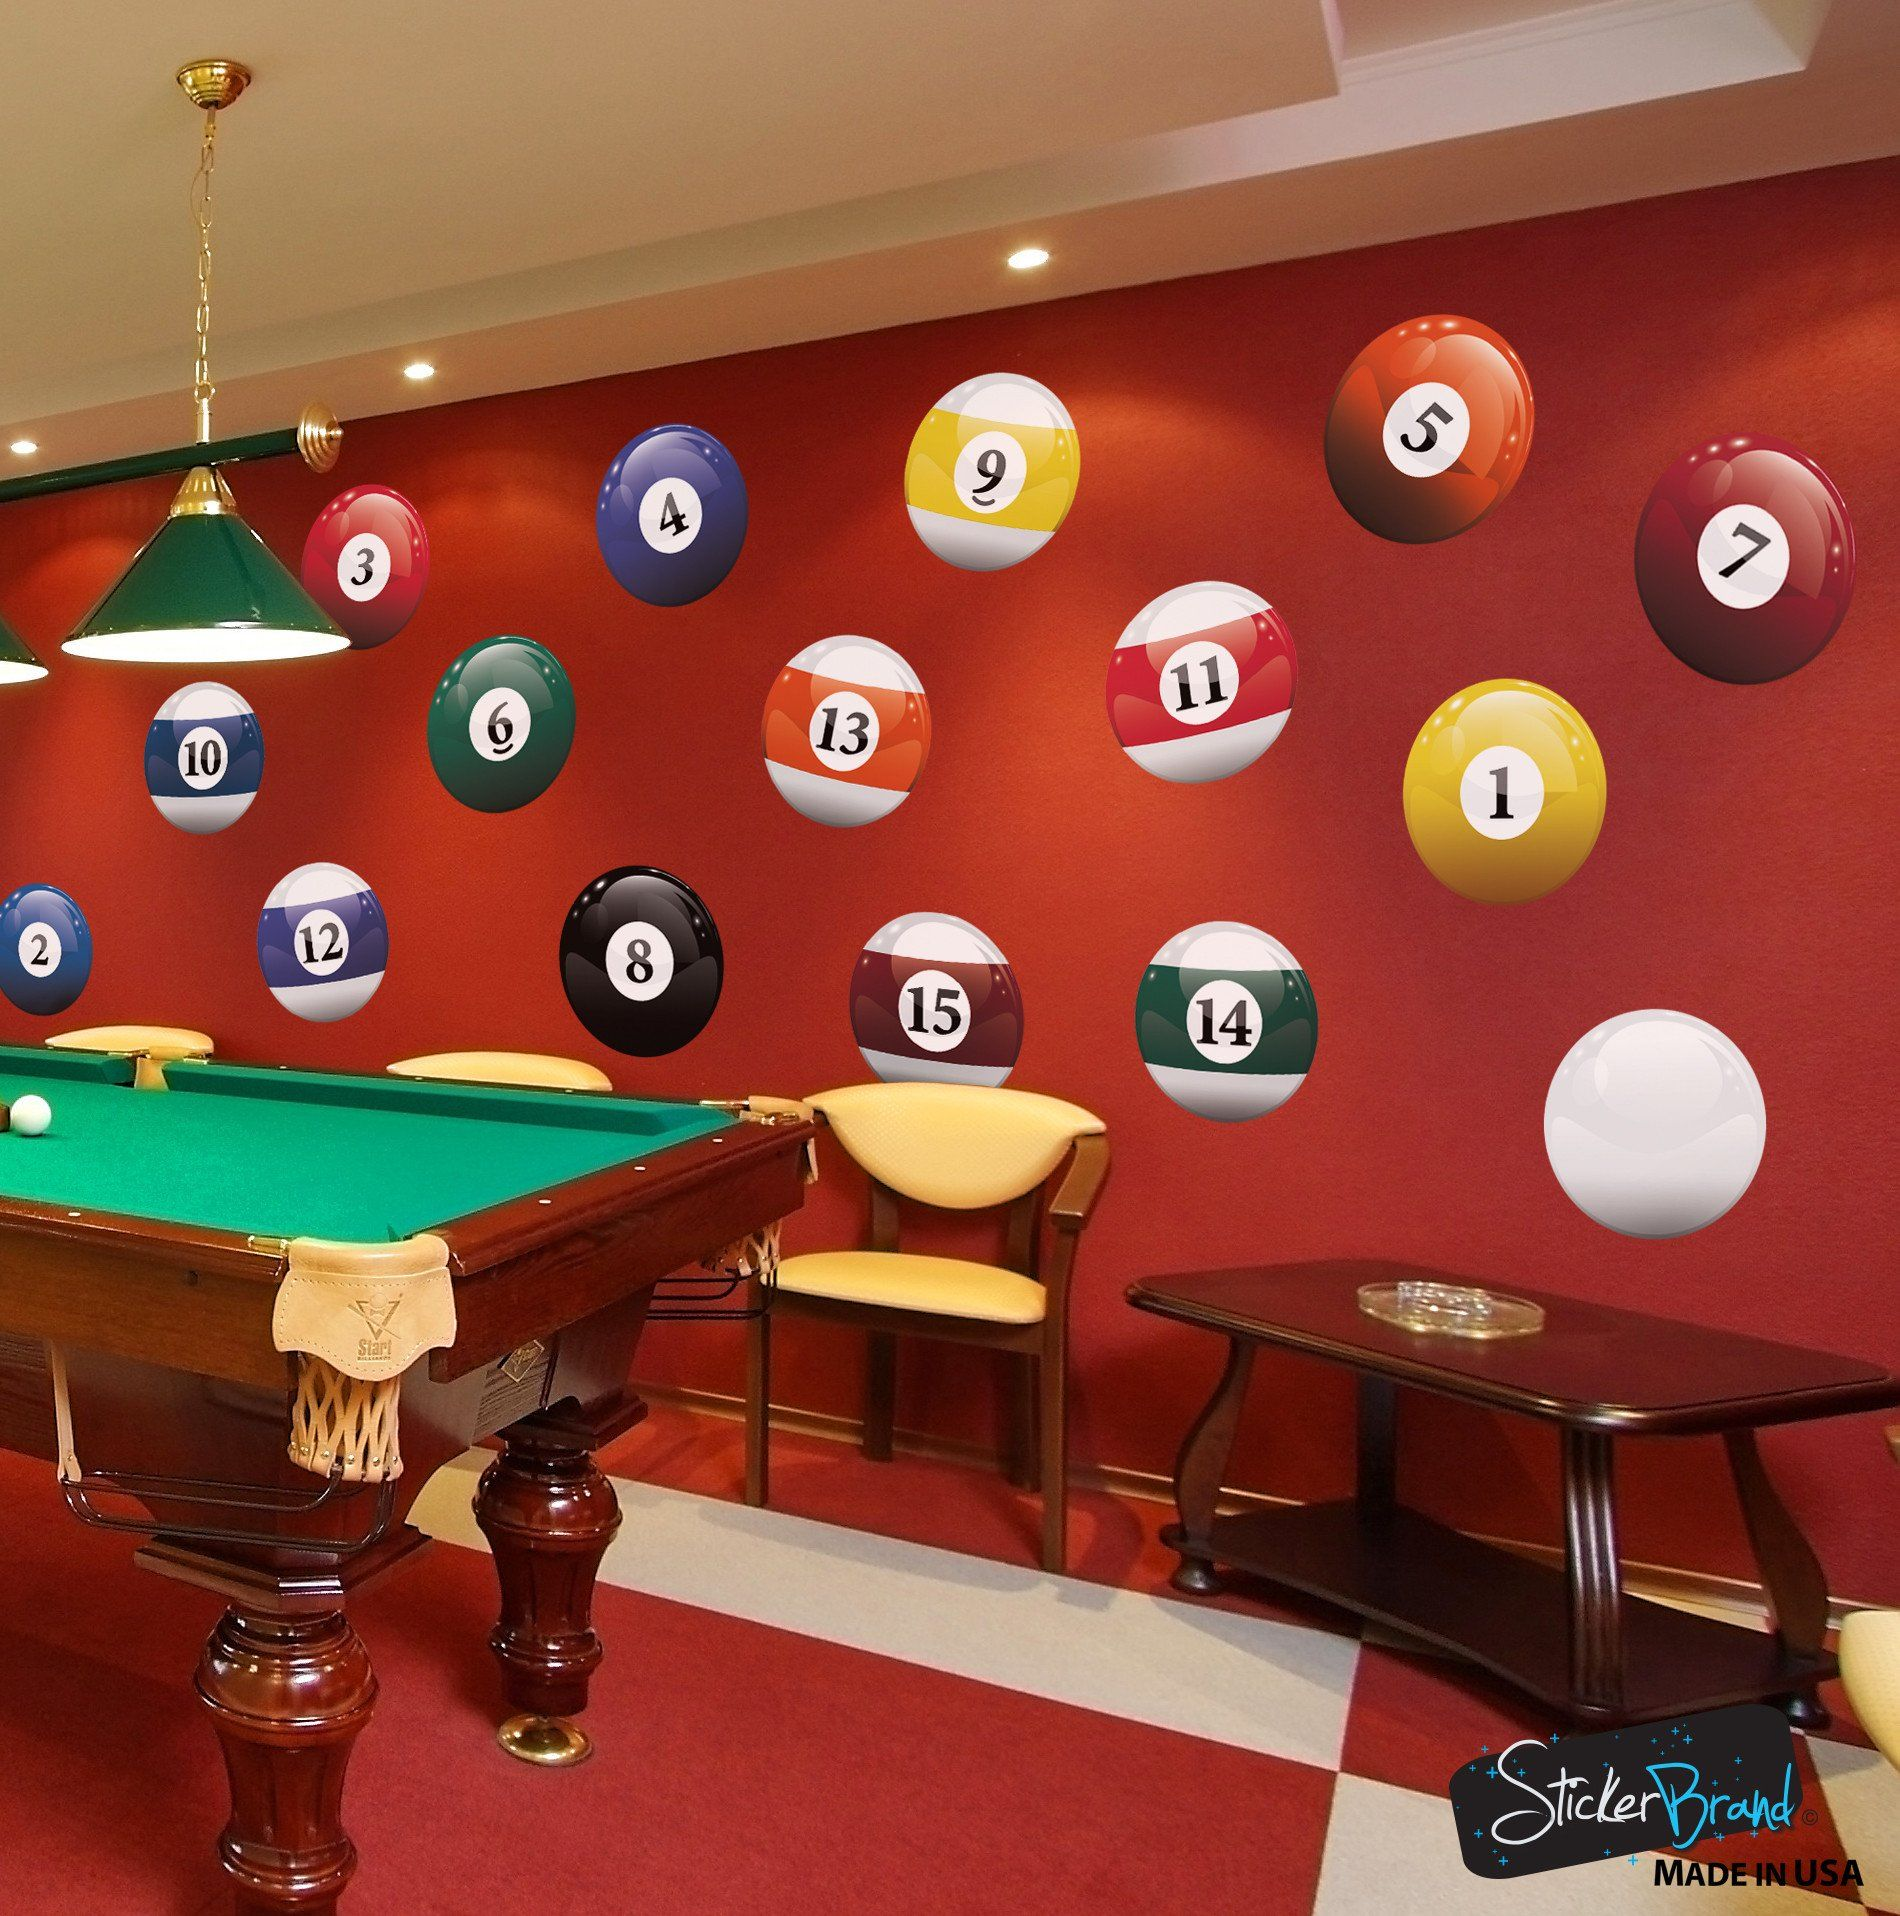 Realistic Color Billiard Balls Wall Decal Sticker 6089 Billiards Room Decor Billiards Billiard Balls